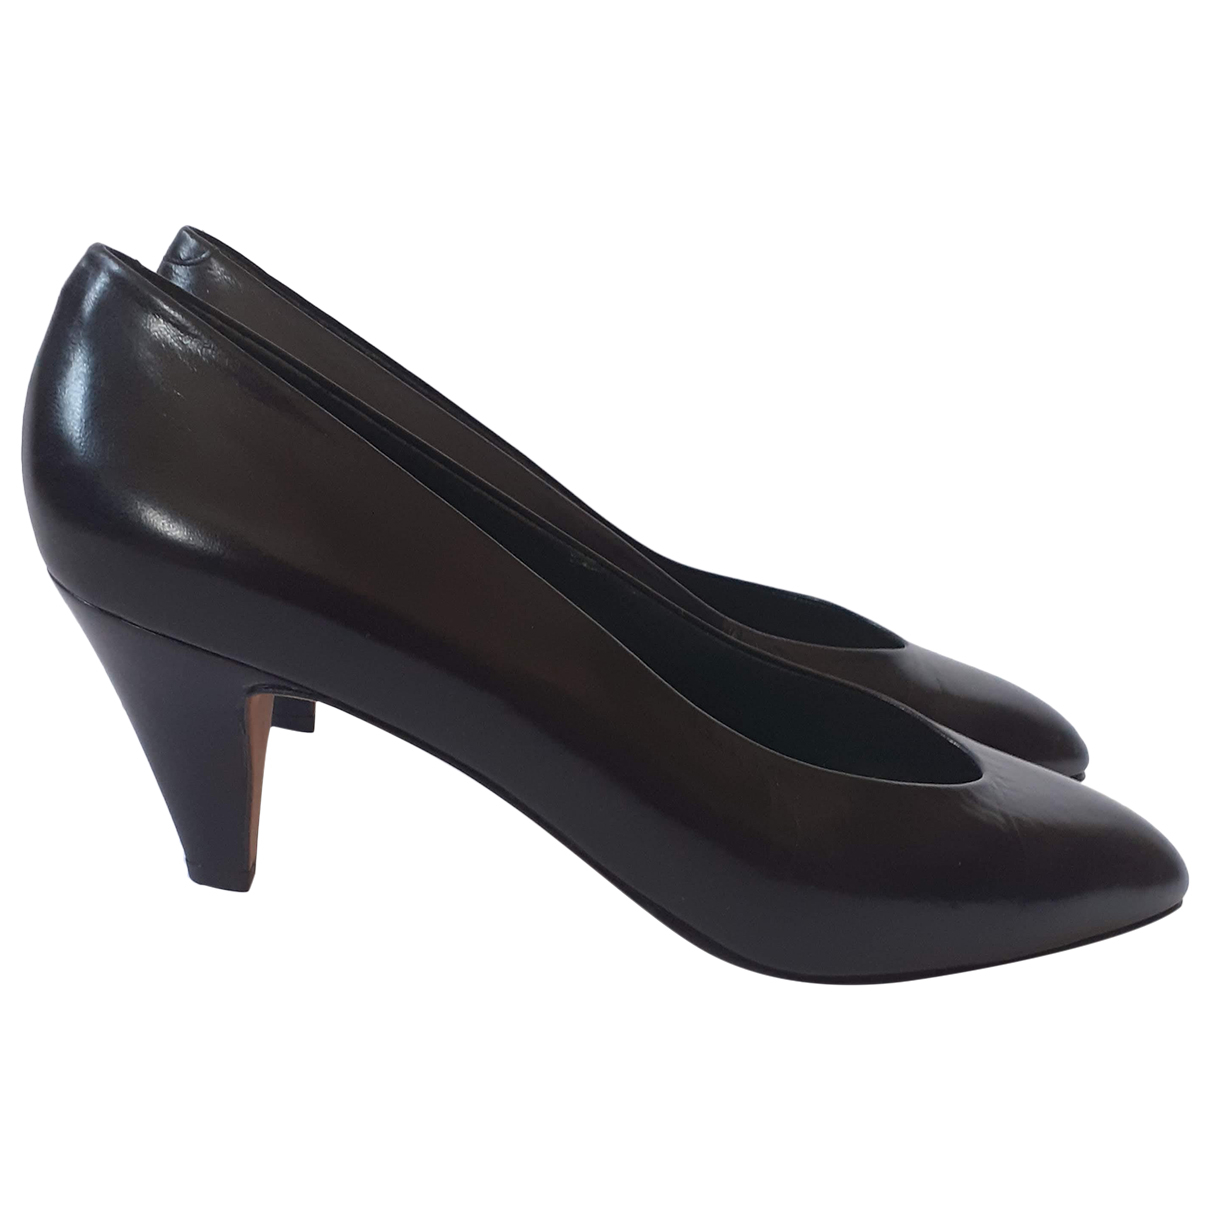 Gucci \N Black Leather Heels for Women 41 IT